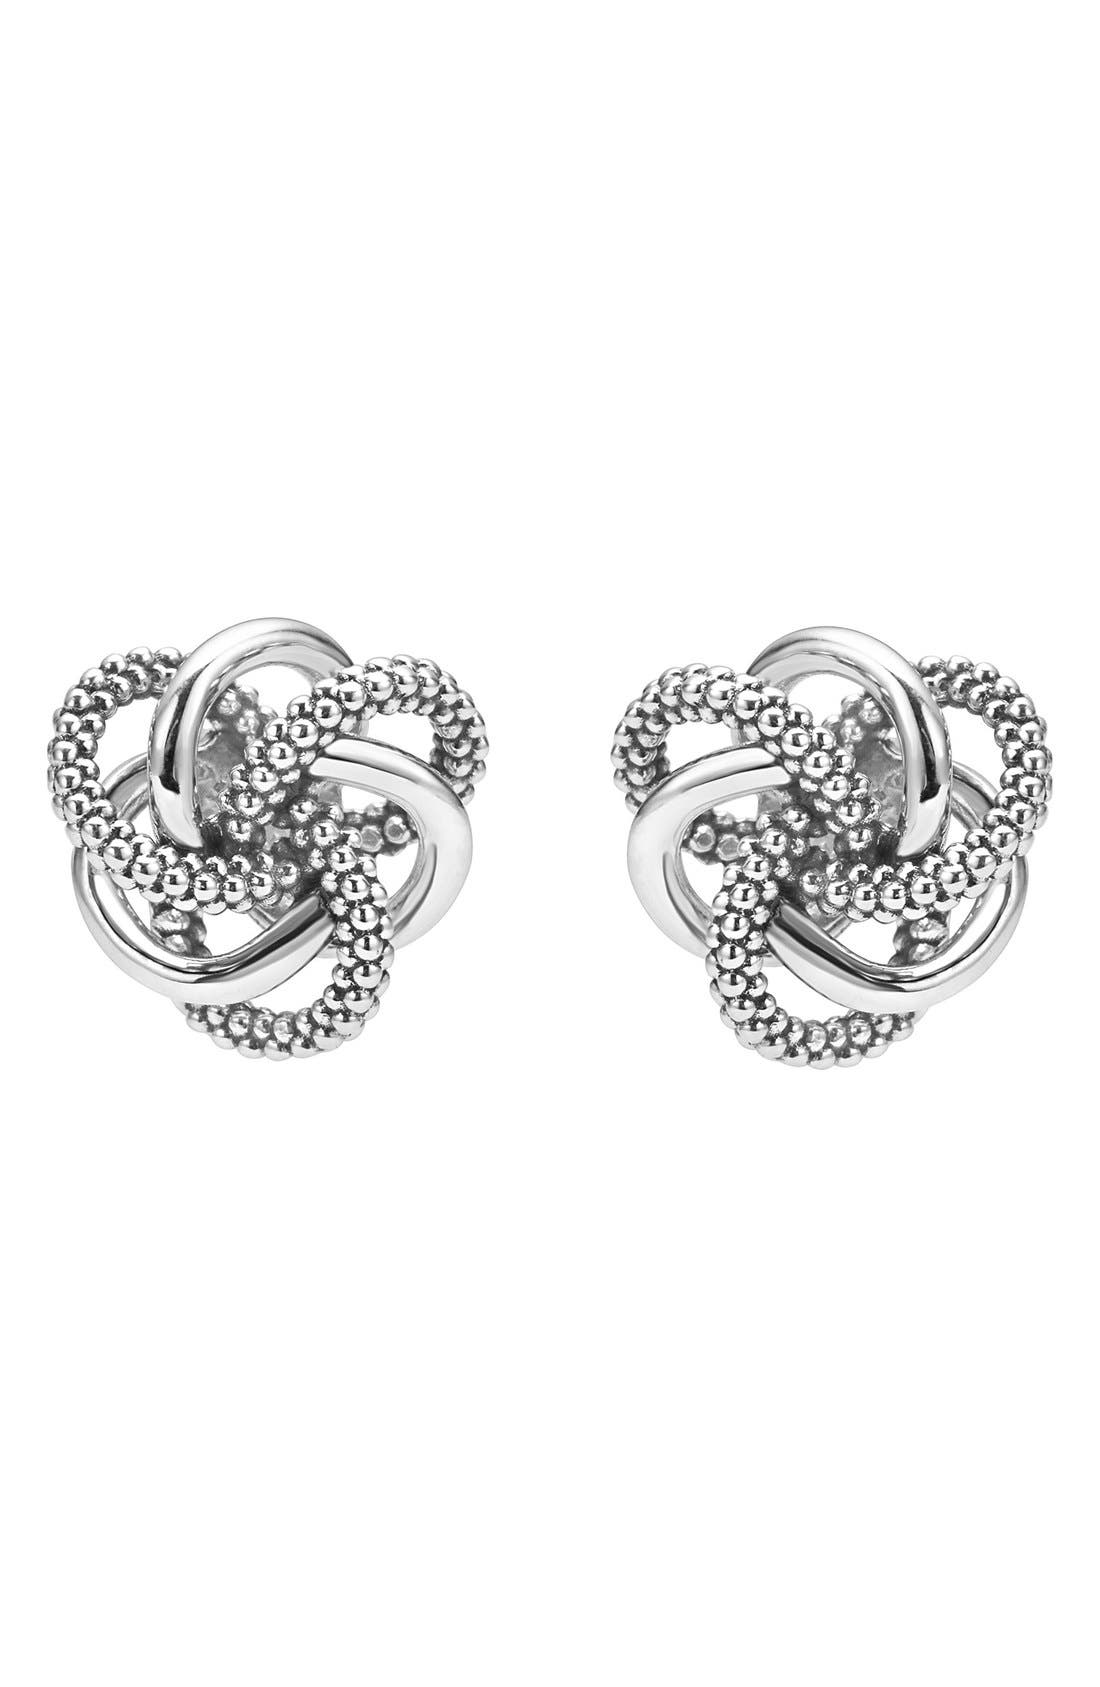 Alternate Image 2  - LAGOS 'Love Knot' Sterling Silver Stud Earrings